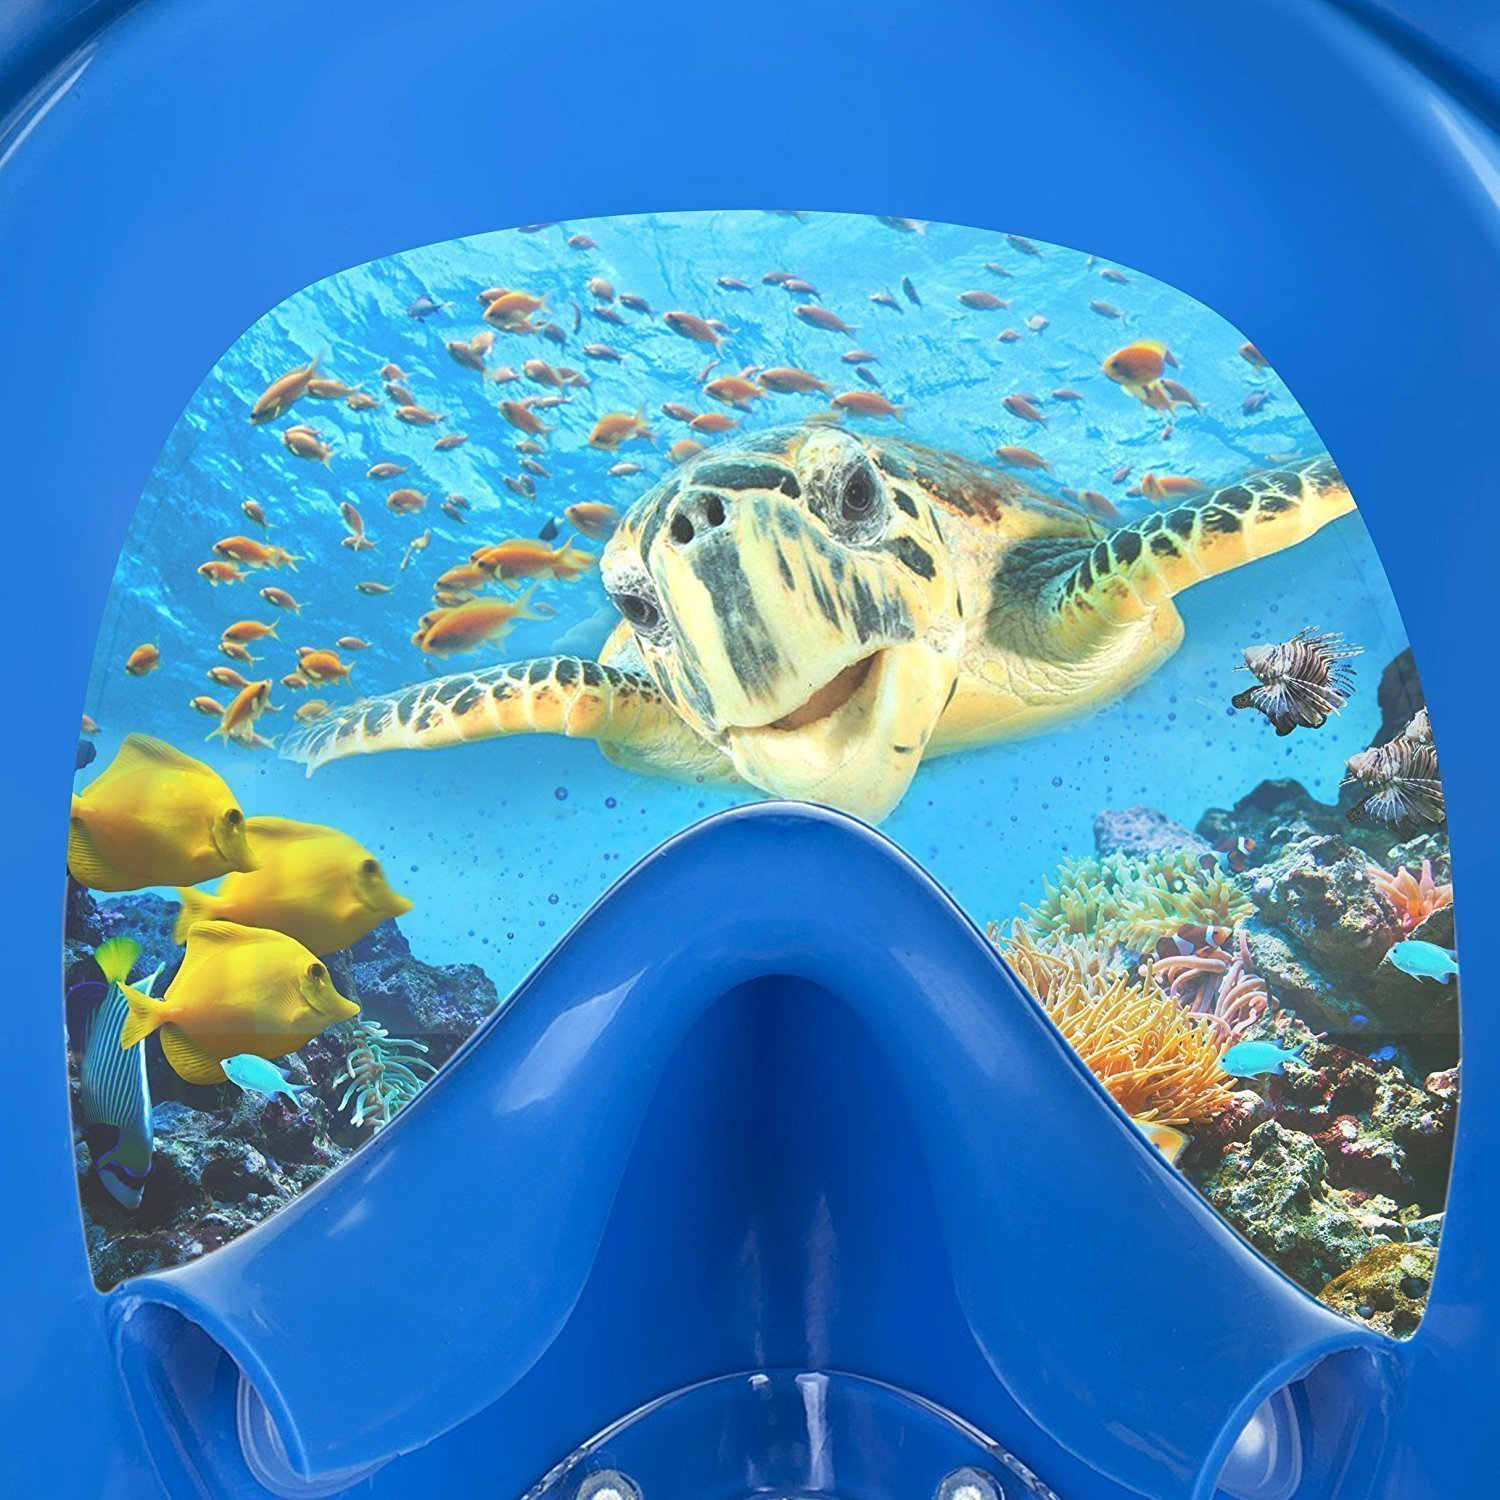 Jasonwell Panoramic Full Face Snorkel Mask with 180/°View Silicone Facial Lining Anti-Fog /& Anti-Leak for Kids Adults.